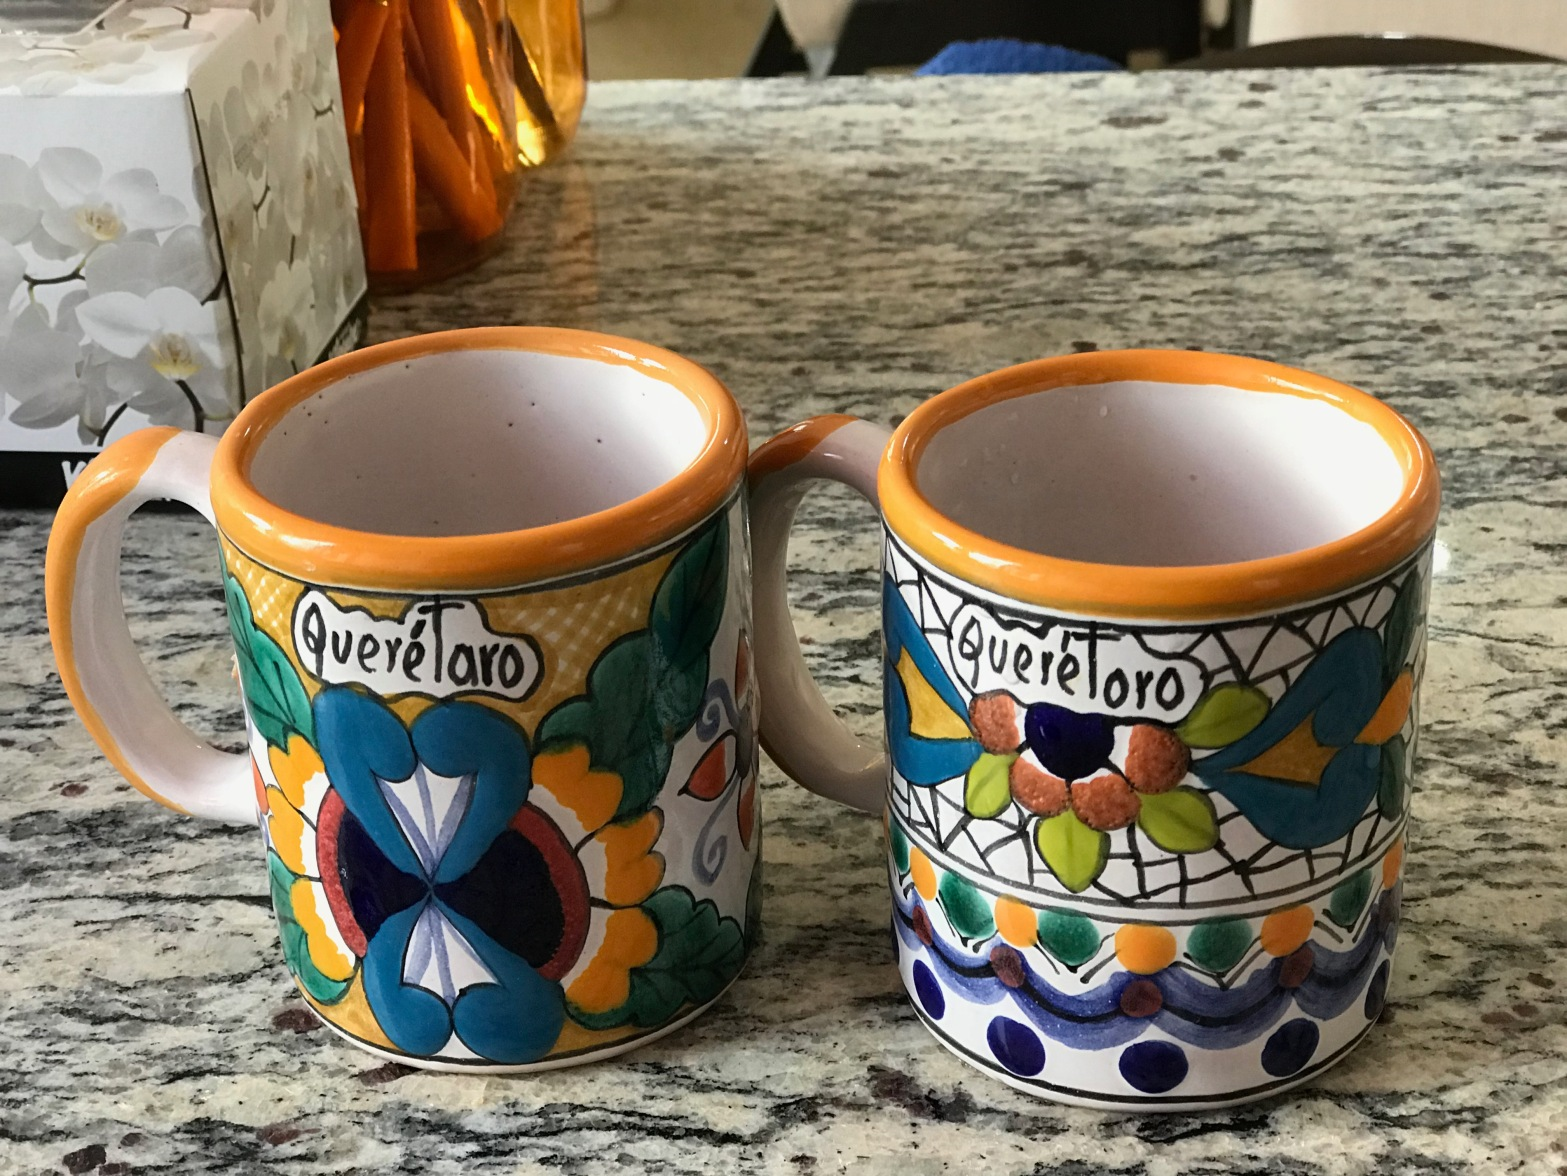 Local Querétaro coffee mugs